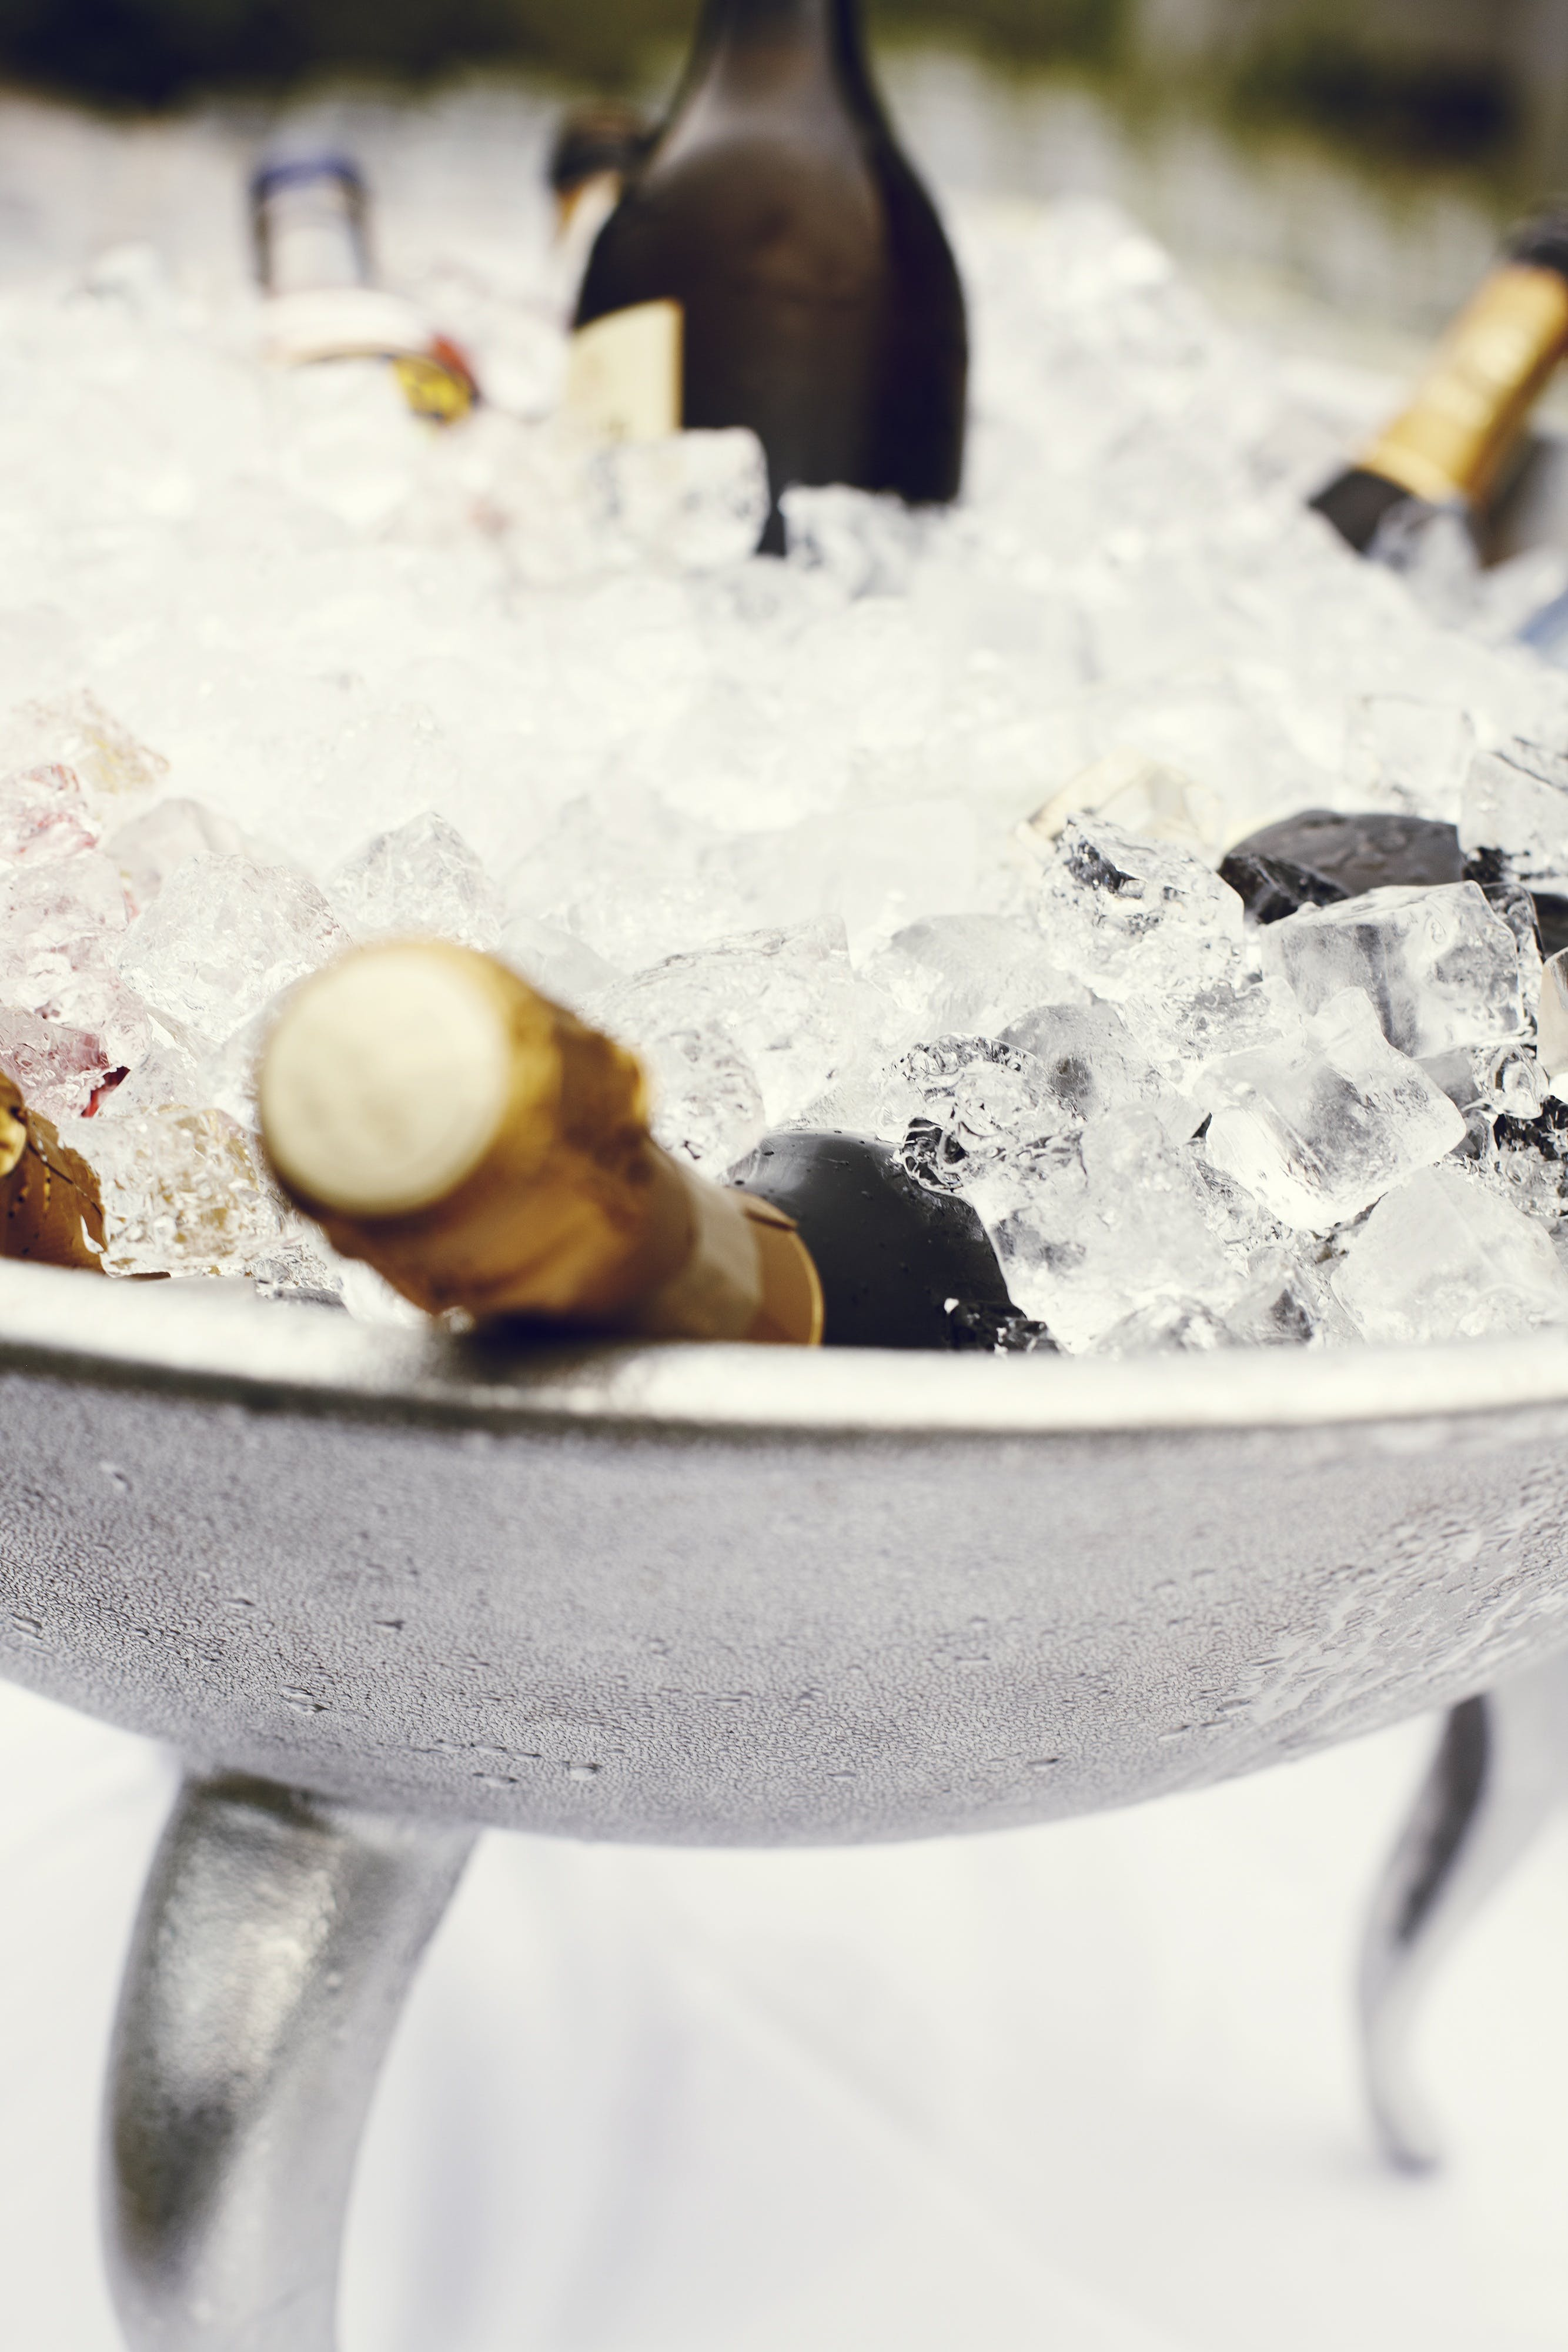 Wine Bottles in Stainless Steel Tray Filled With Ice